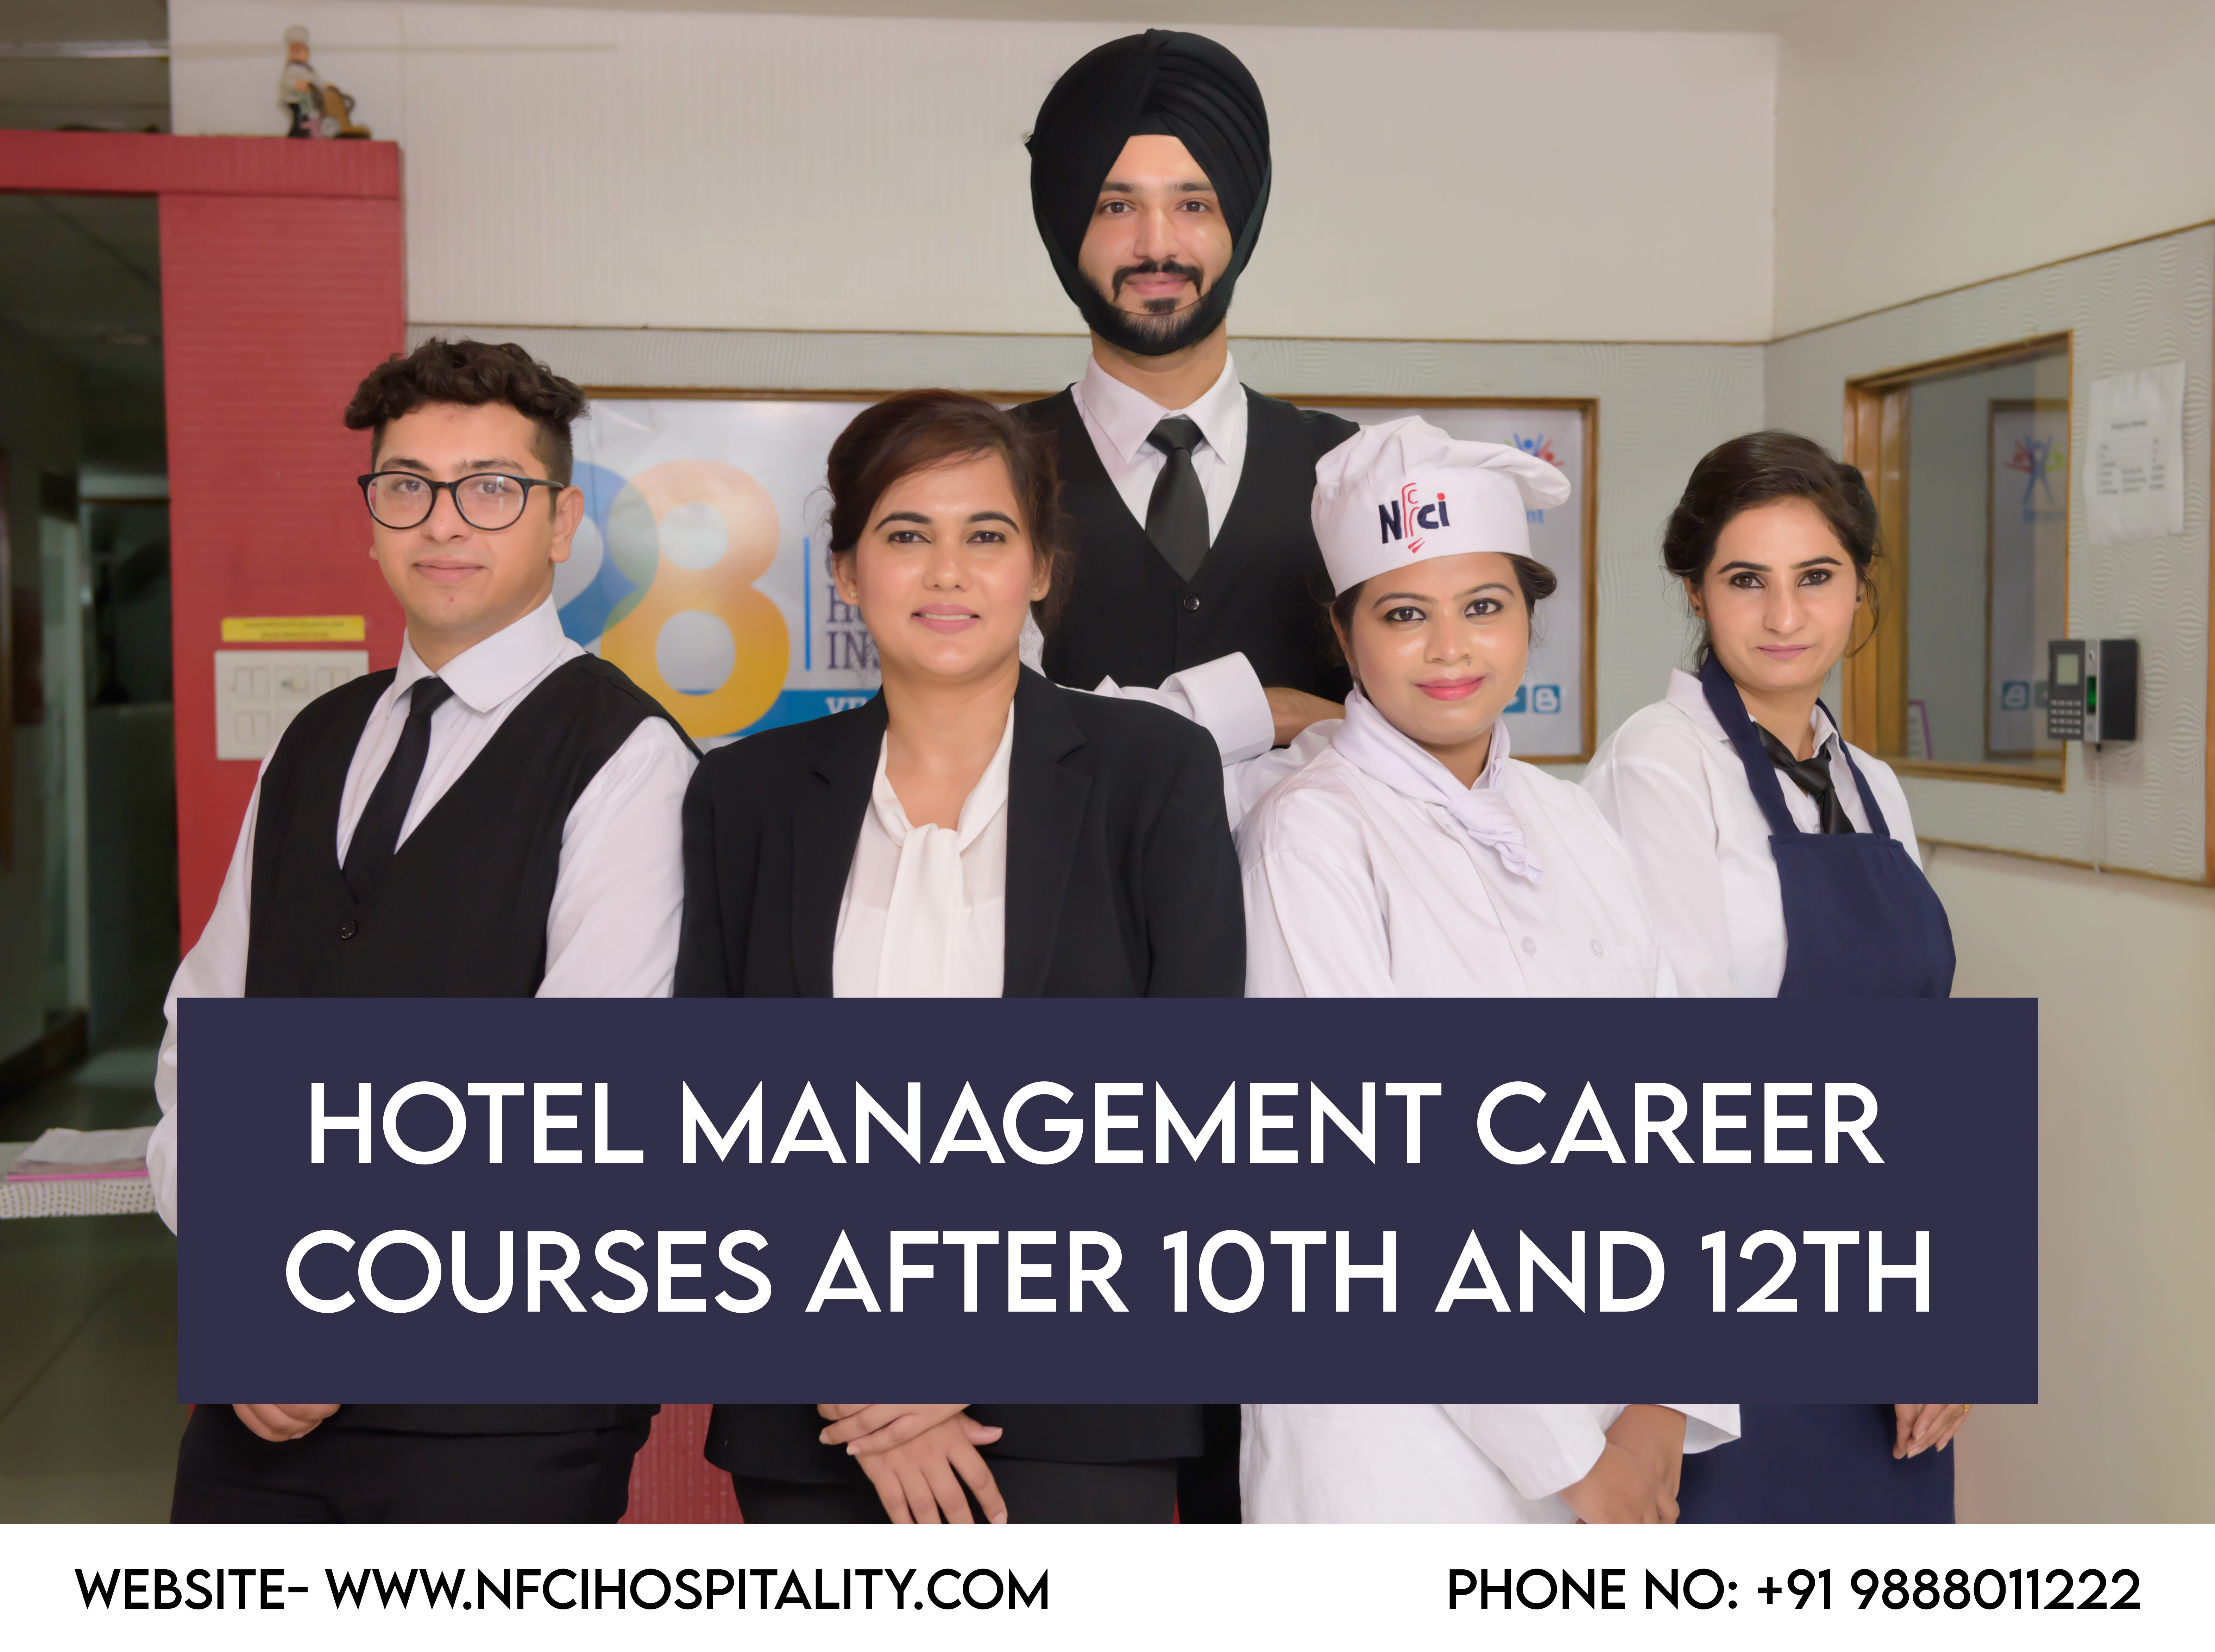 Hotel Management Career Courses after 10th and 12th